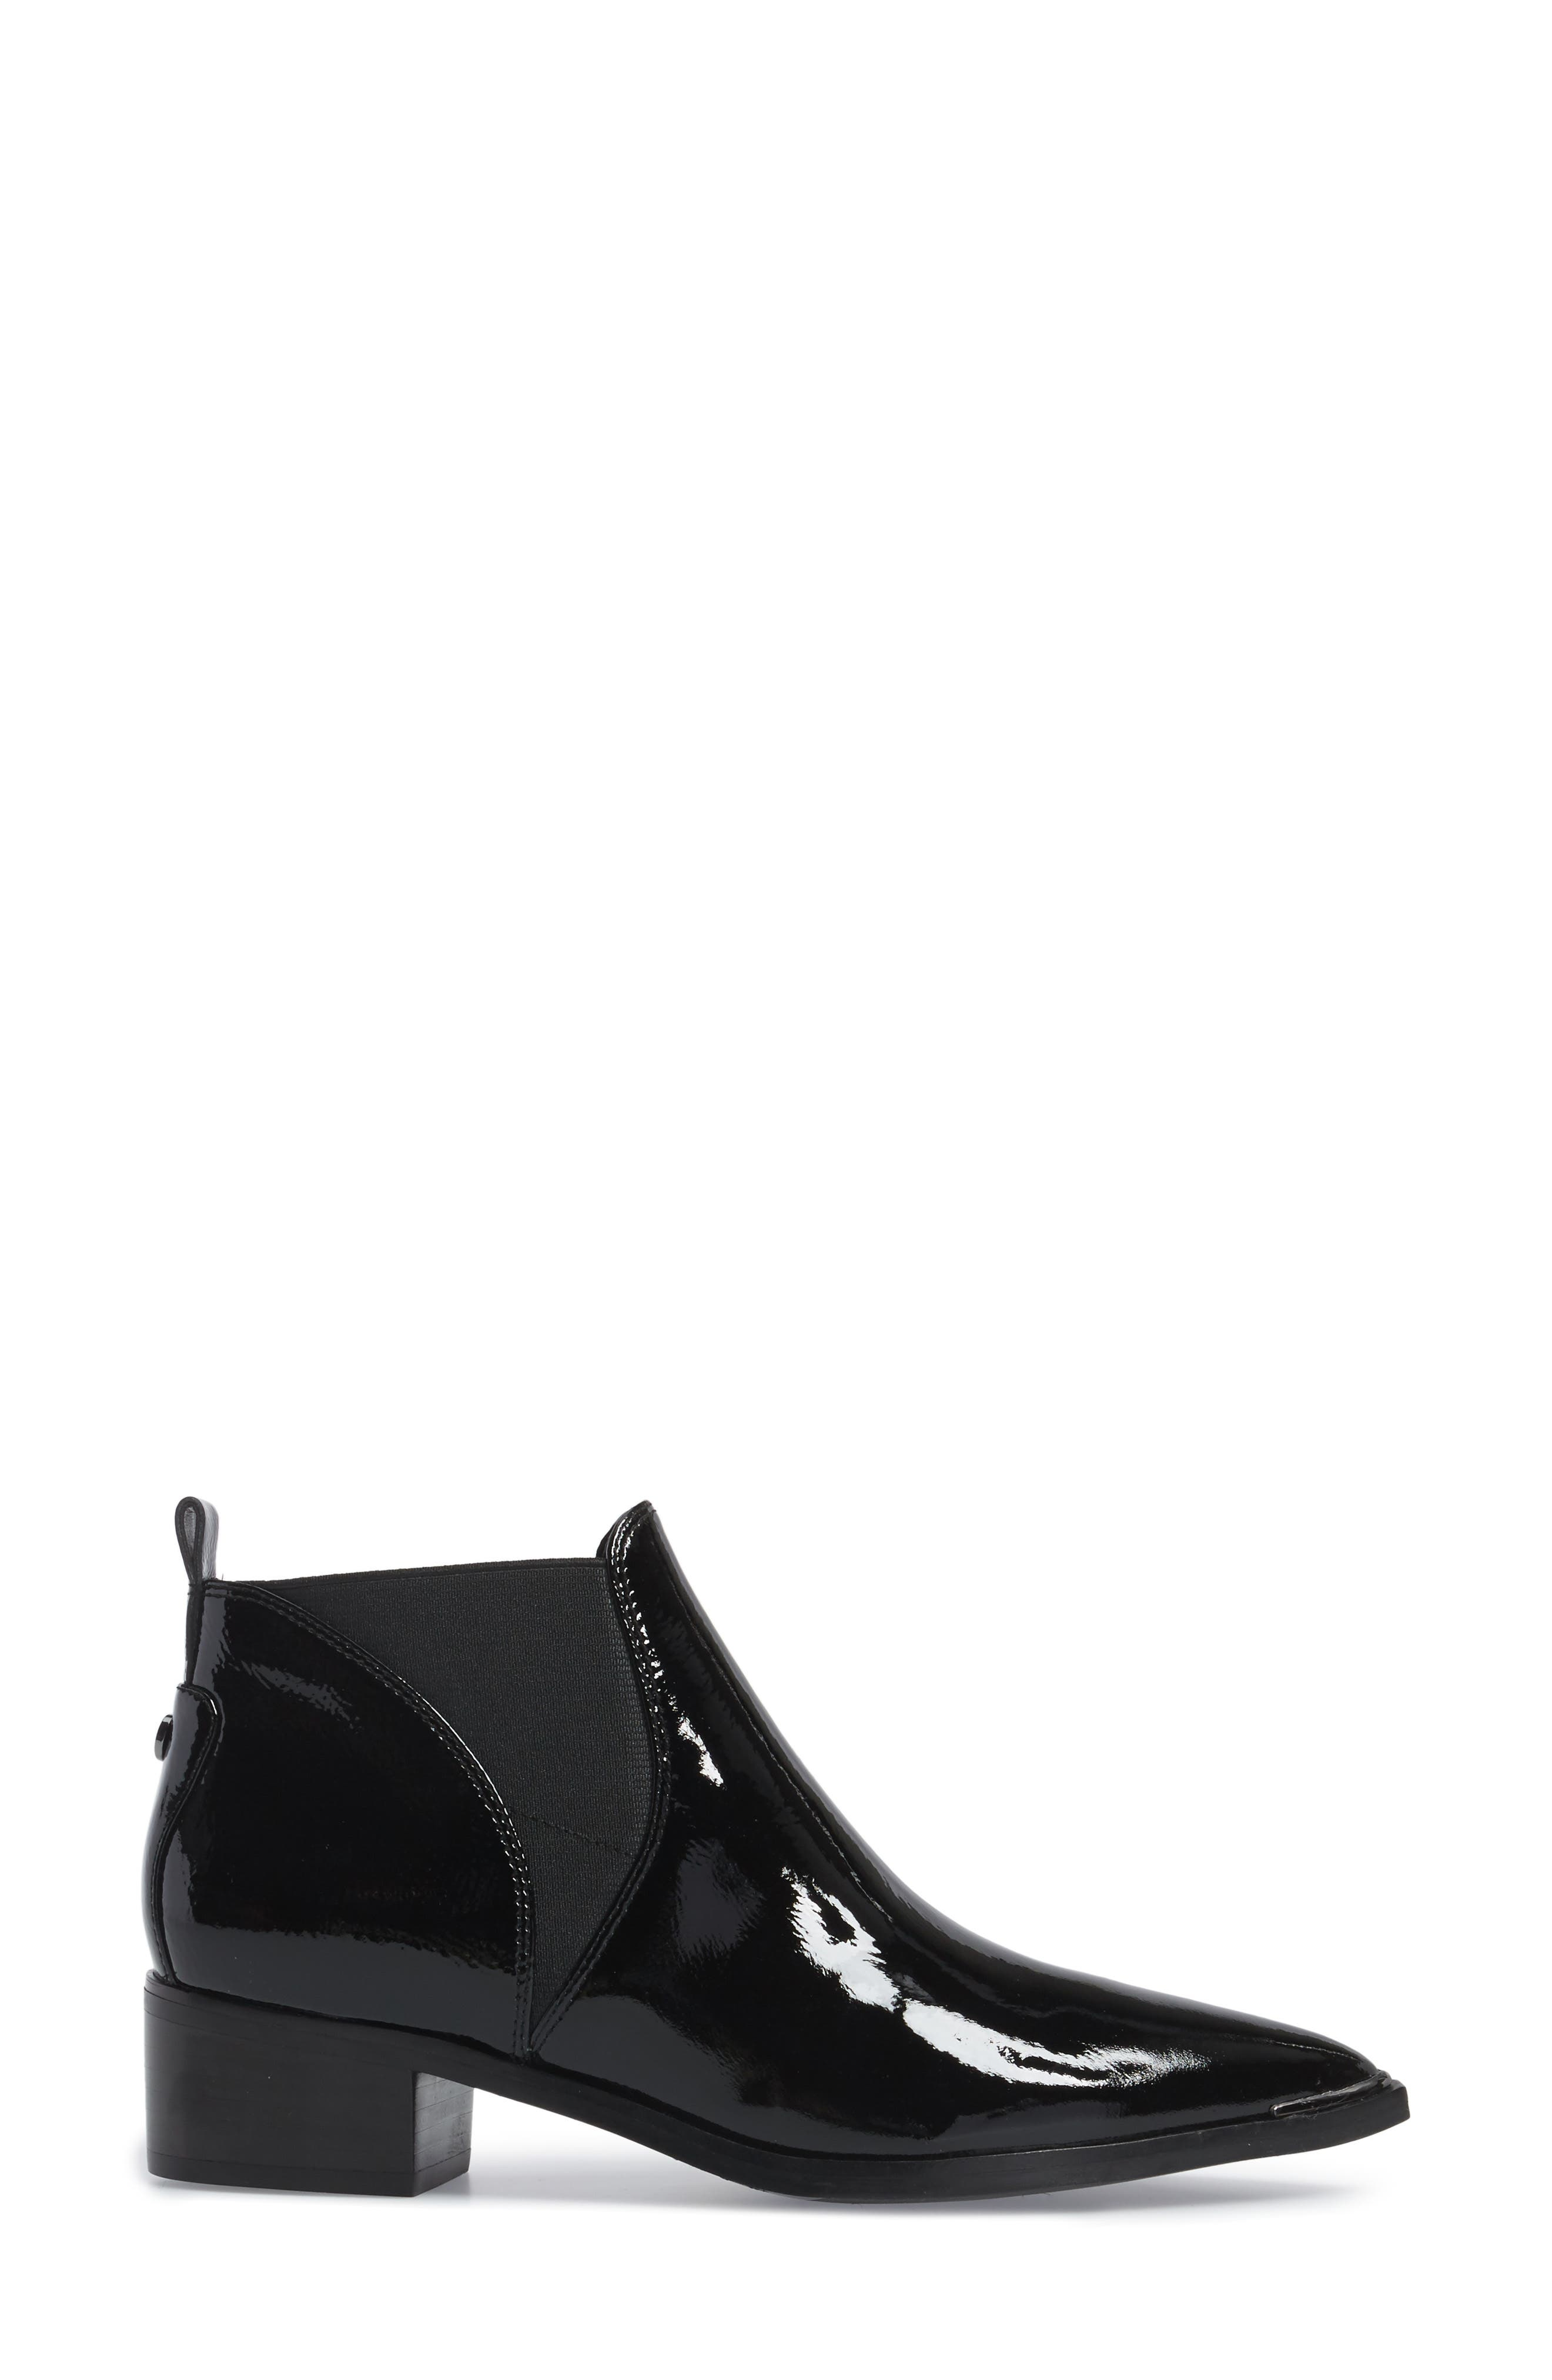 Yellin Pointy Toe Chelsea Boot,                             Alternate thumbnail 3, color,                             Black Patent Leather